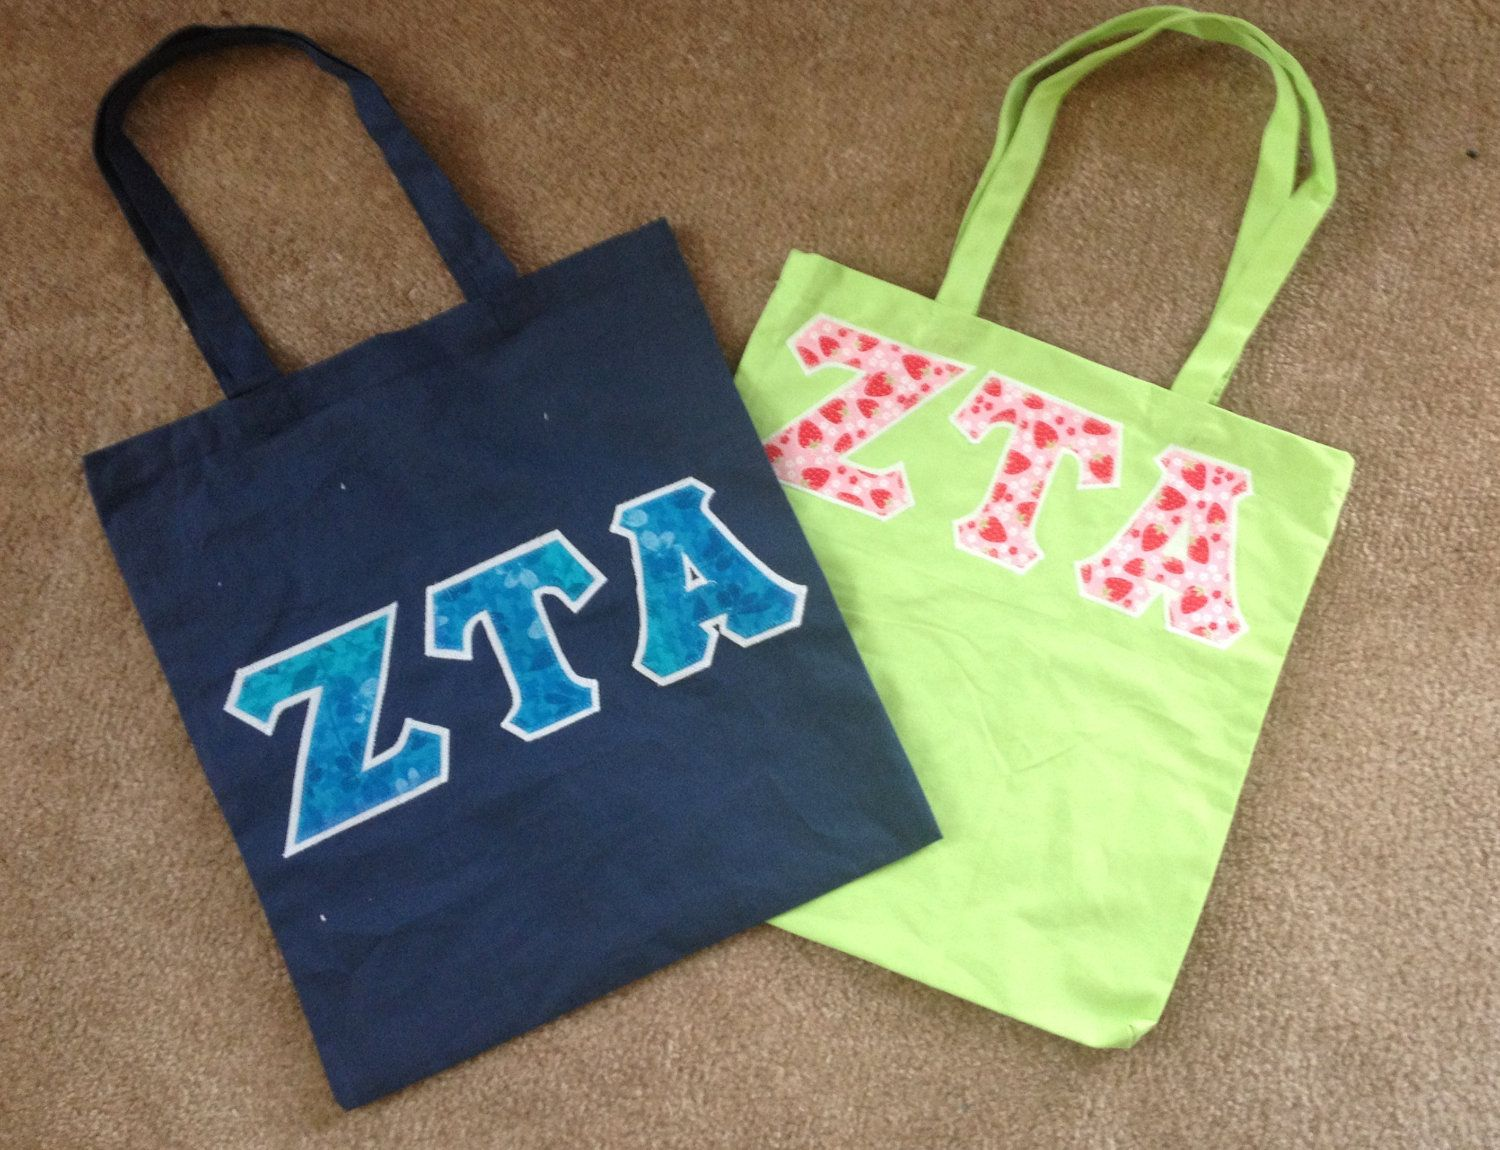 Greek Lettered Tote bags. $10.00.           10 different colors, 100's of fabrics to choose from.        Licensed for:  Alpha Chi Omega,  Alpha Delta Pi,  Alpha Omicron Pi,  Alpha Phi,  Alpha Xi Delta,  Chi Omega,  Delta Delta Delta,  Delta Gamma,  Delta Zeta,  Kappa Delta,  Kappa Kappa Gamma,  Phi Mu,  Sigma Kappa, and  Zeta Tau Alpha